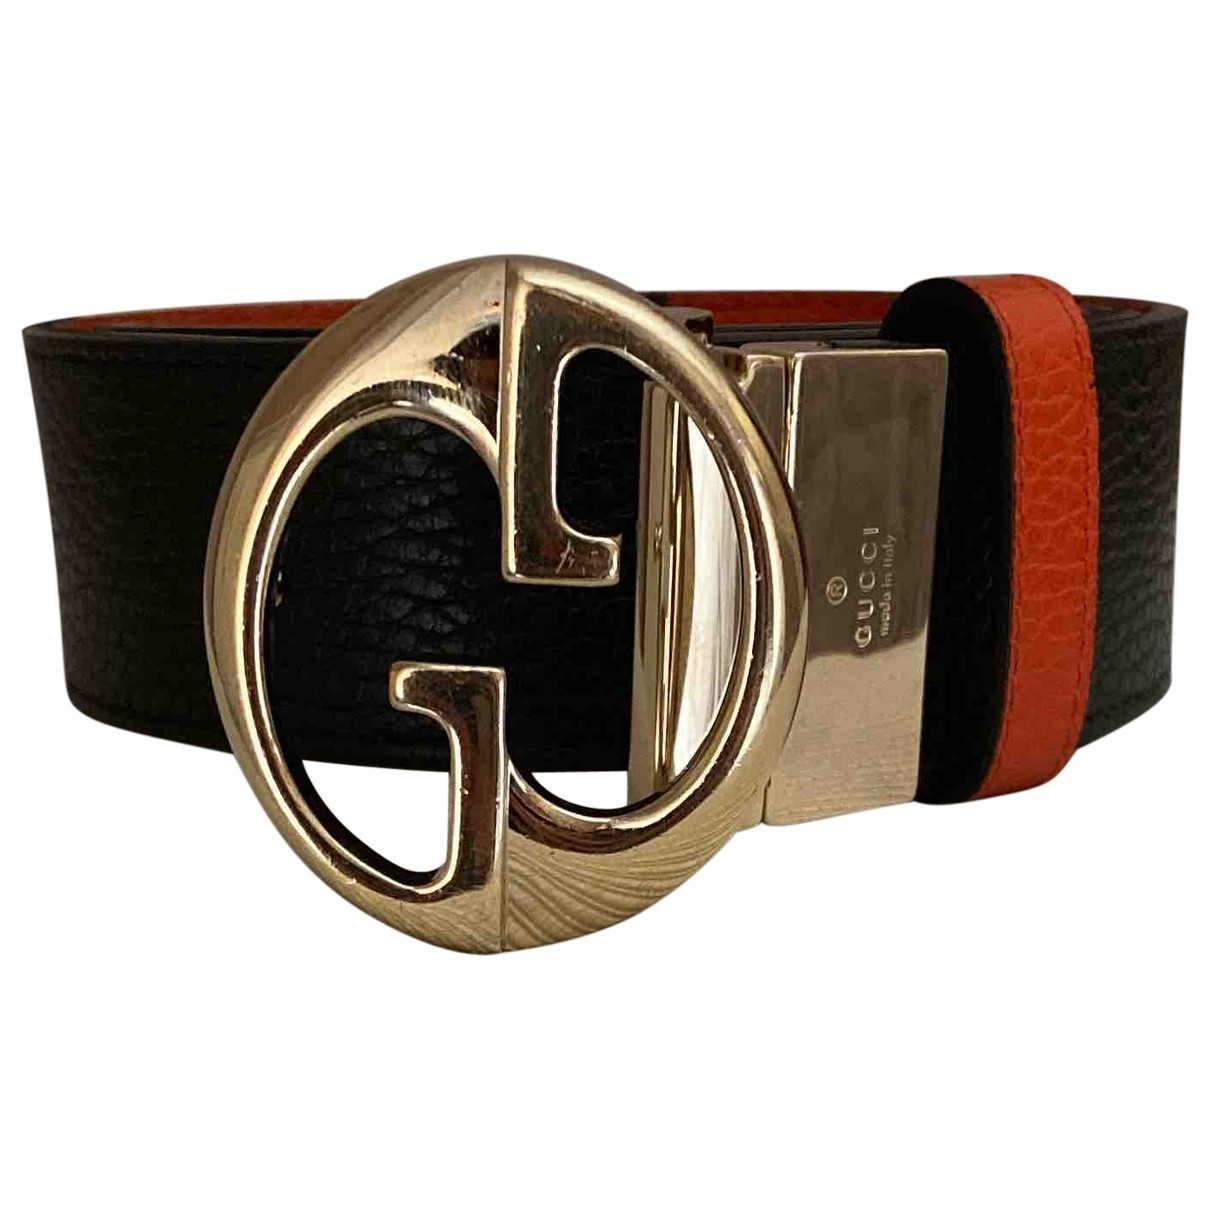 Gucci - Ceinture Interlocking Buckle pour femme en cuir - multicolore